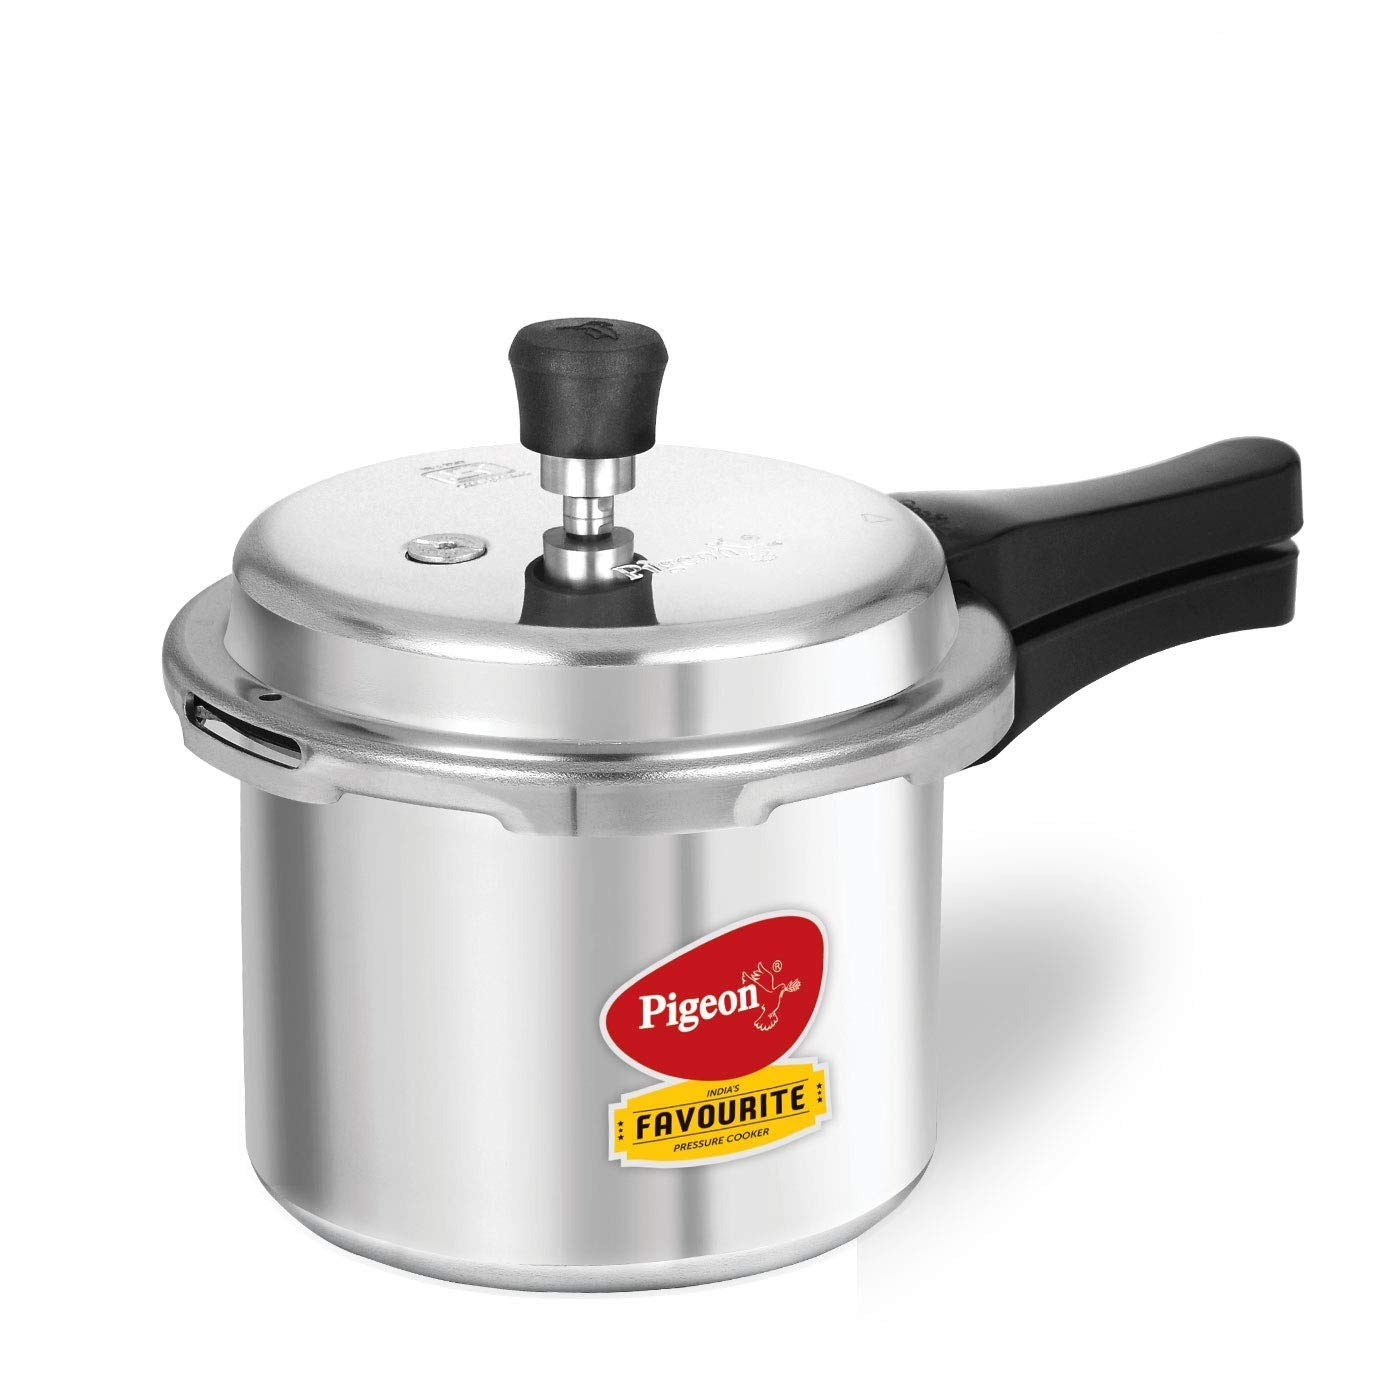 Pigeon by Stovekraft Favourite Induction Base Aluminium Pressure Cooker